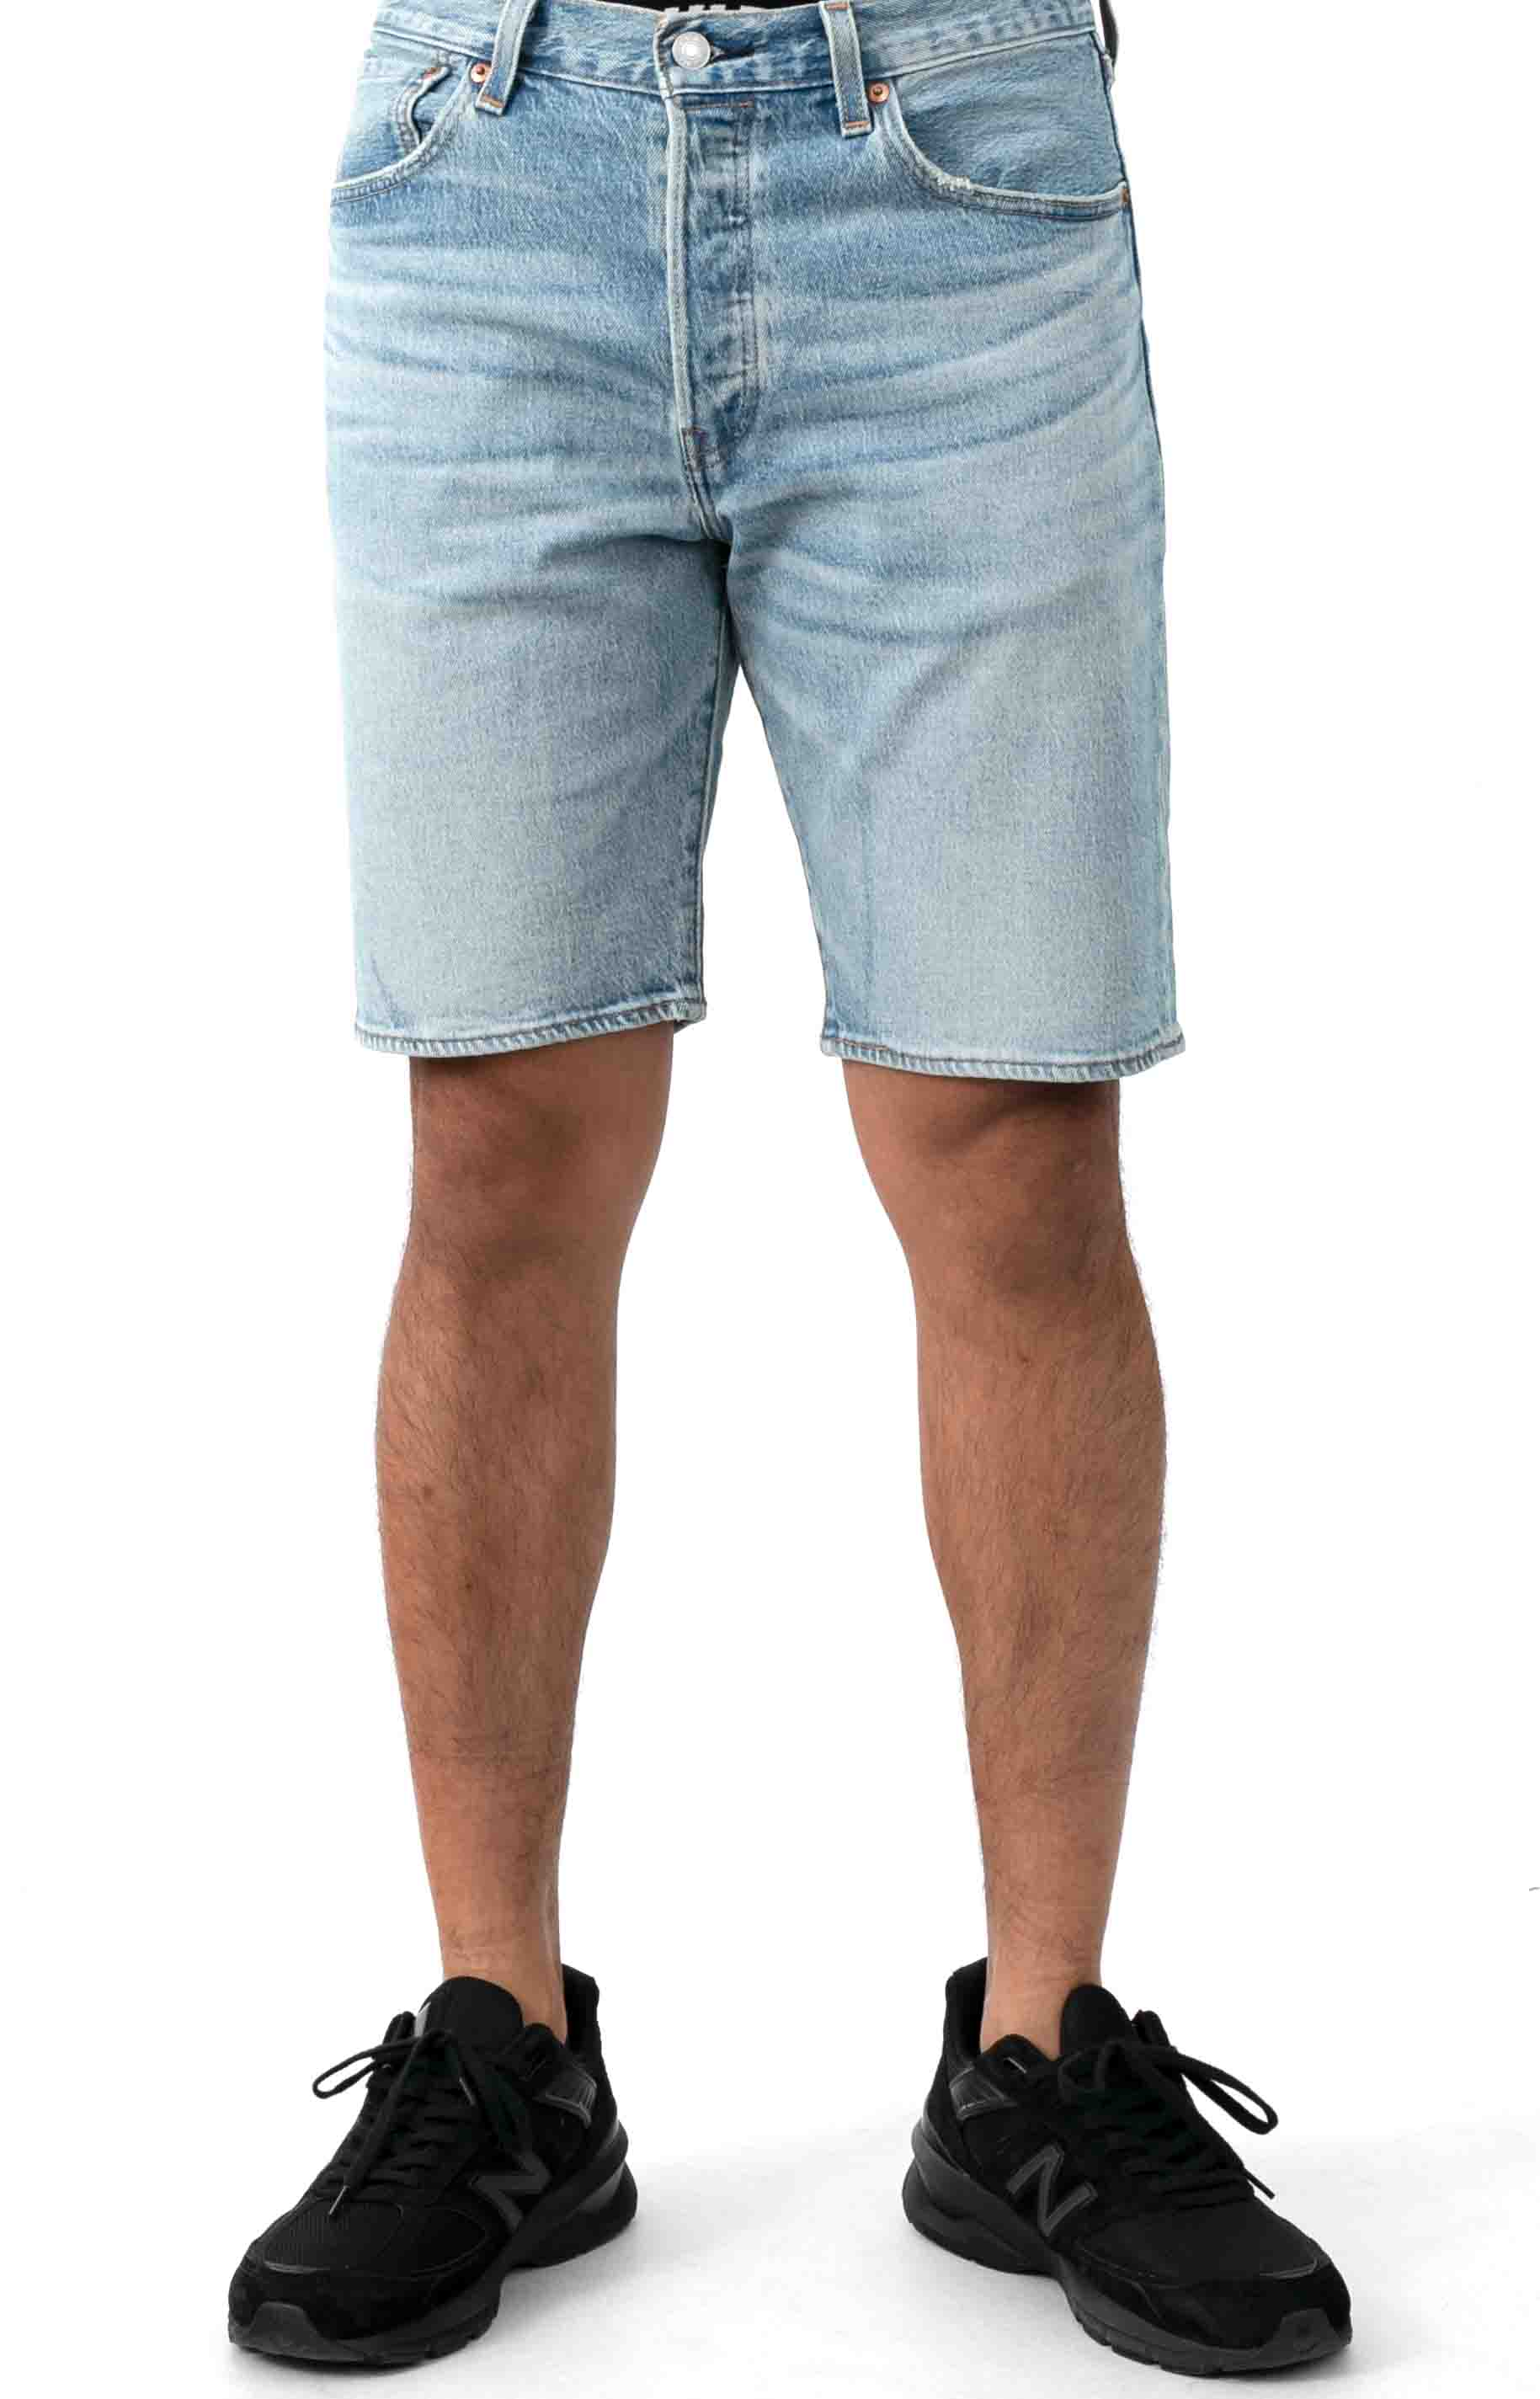 (36512-0100) 501 Hemmed 9 in. Shorts - Wild Boar Light Wash 2